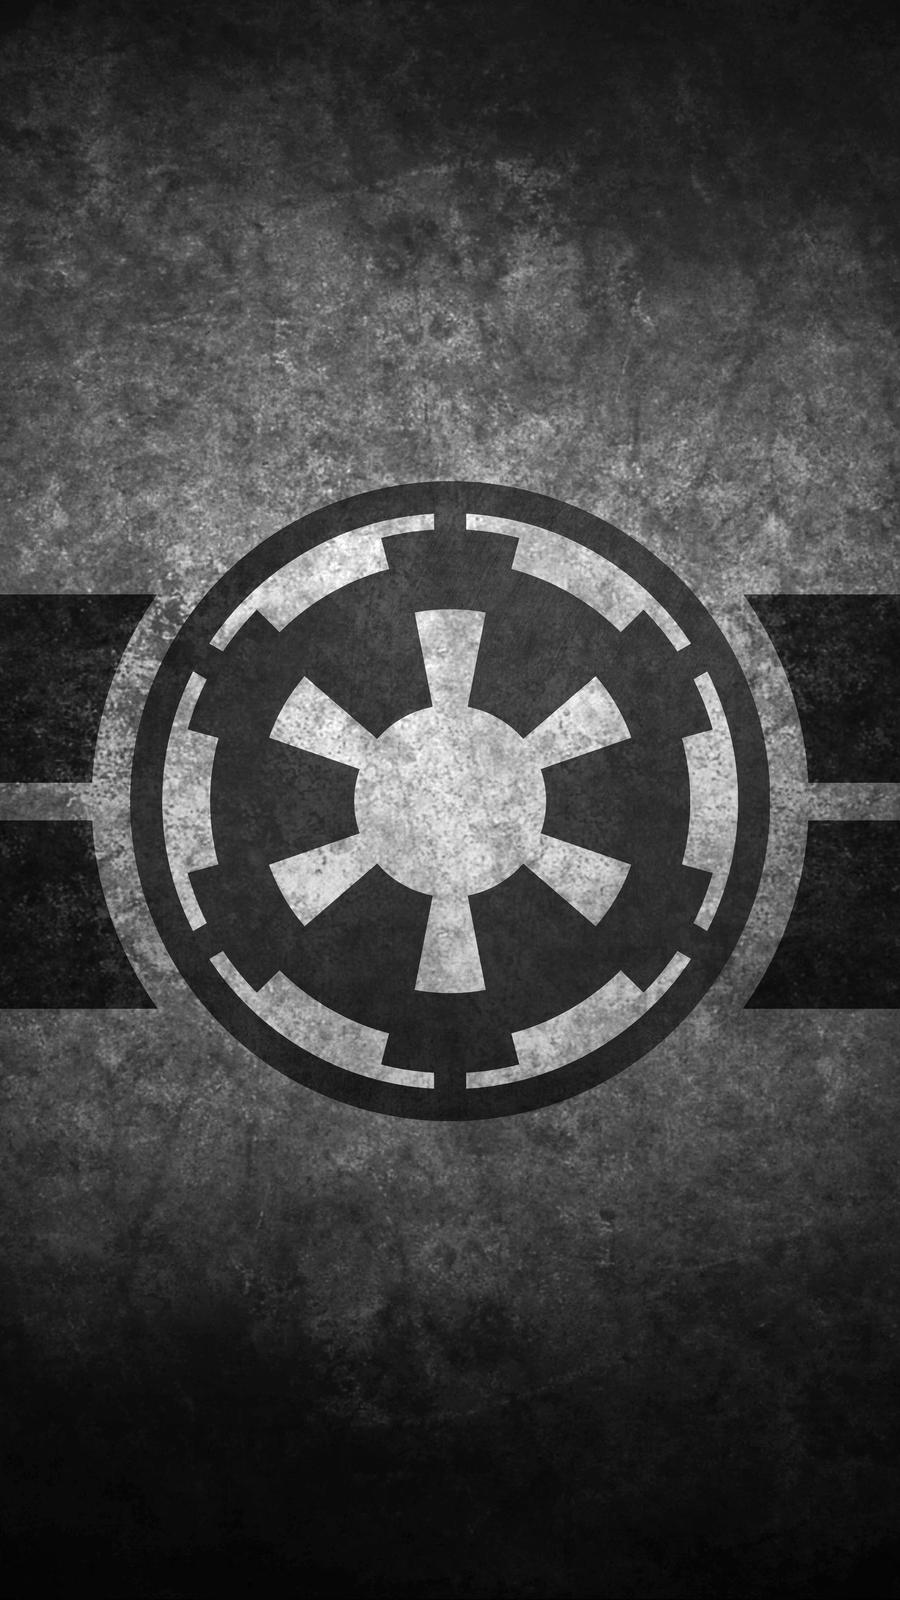 Imperial Cog/Insignia/Symbol Cellphone Wallpaper